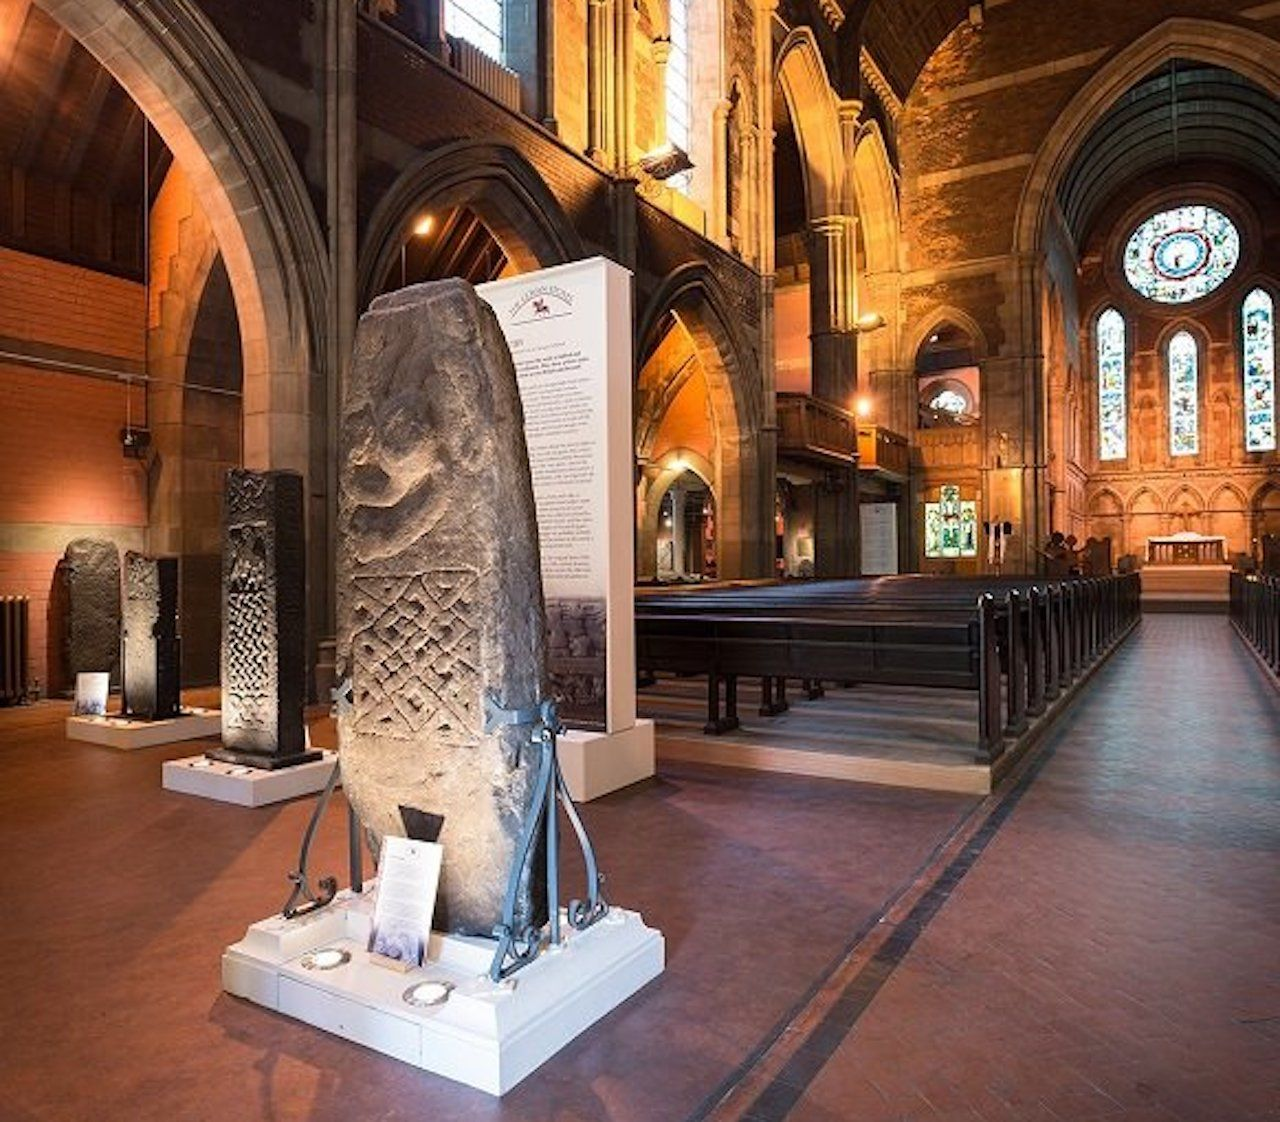 Inside of the Govan Old Parish Church, Scotland